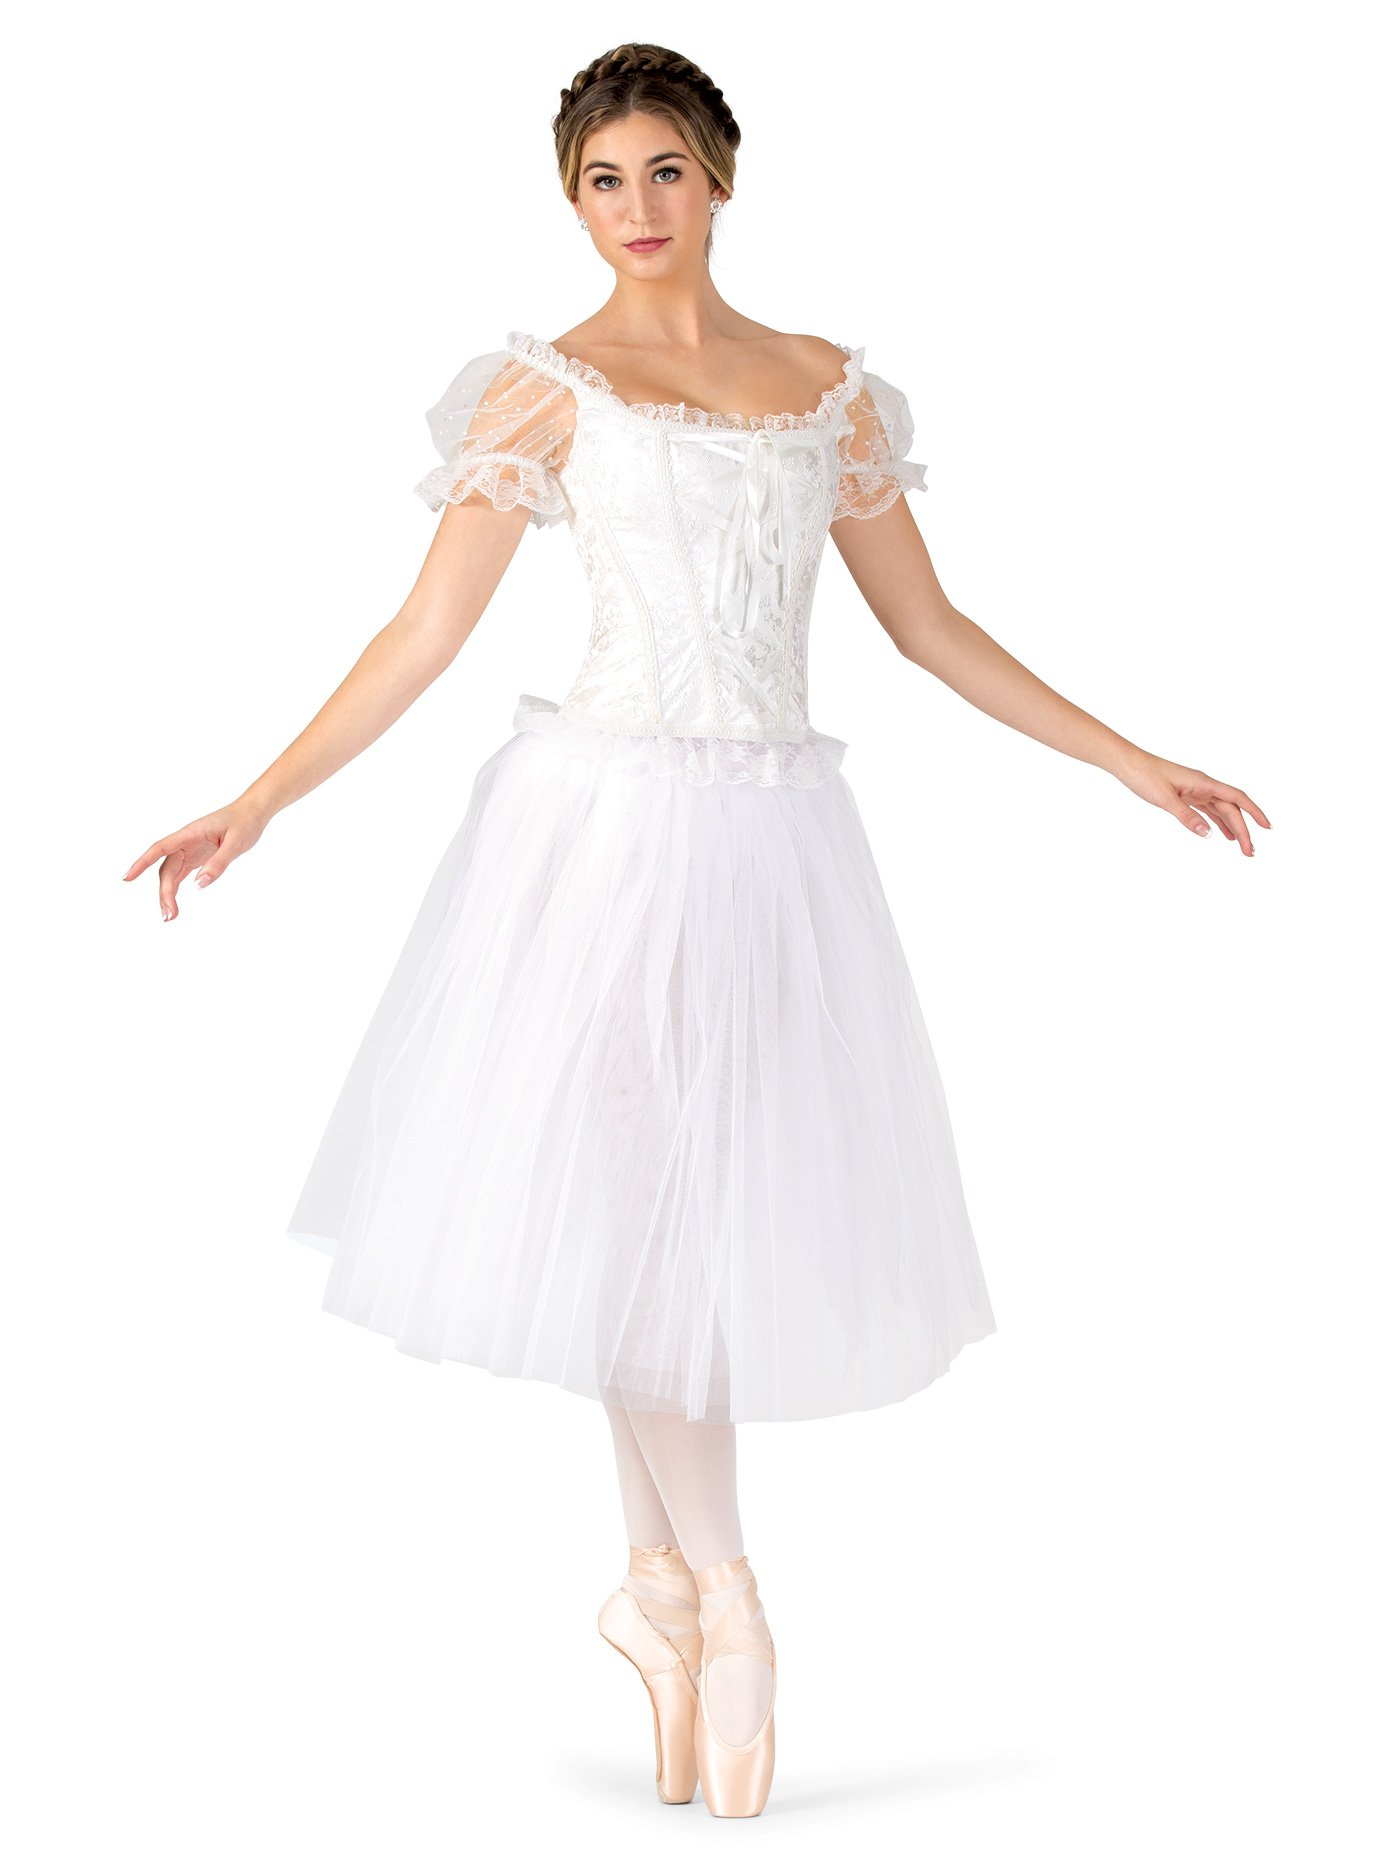 1a4f5393c Natalie Dancewear Womens Romantic Length Ballet Tutu Skirt N9013WHTM White  Medium